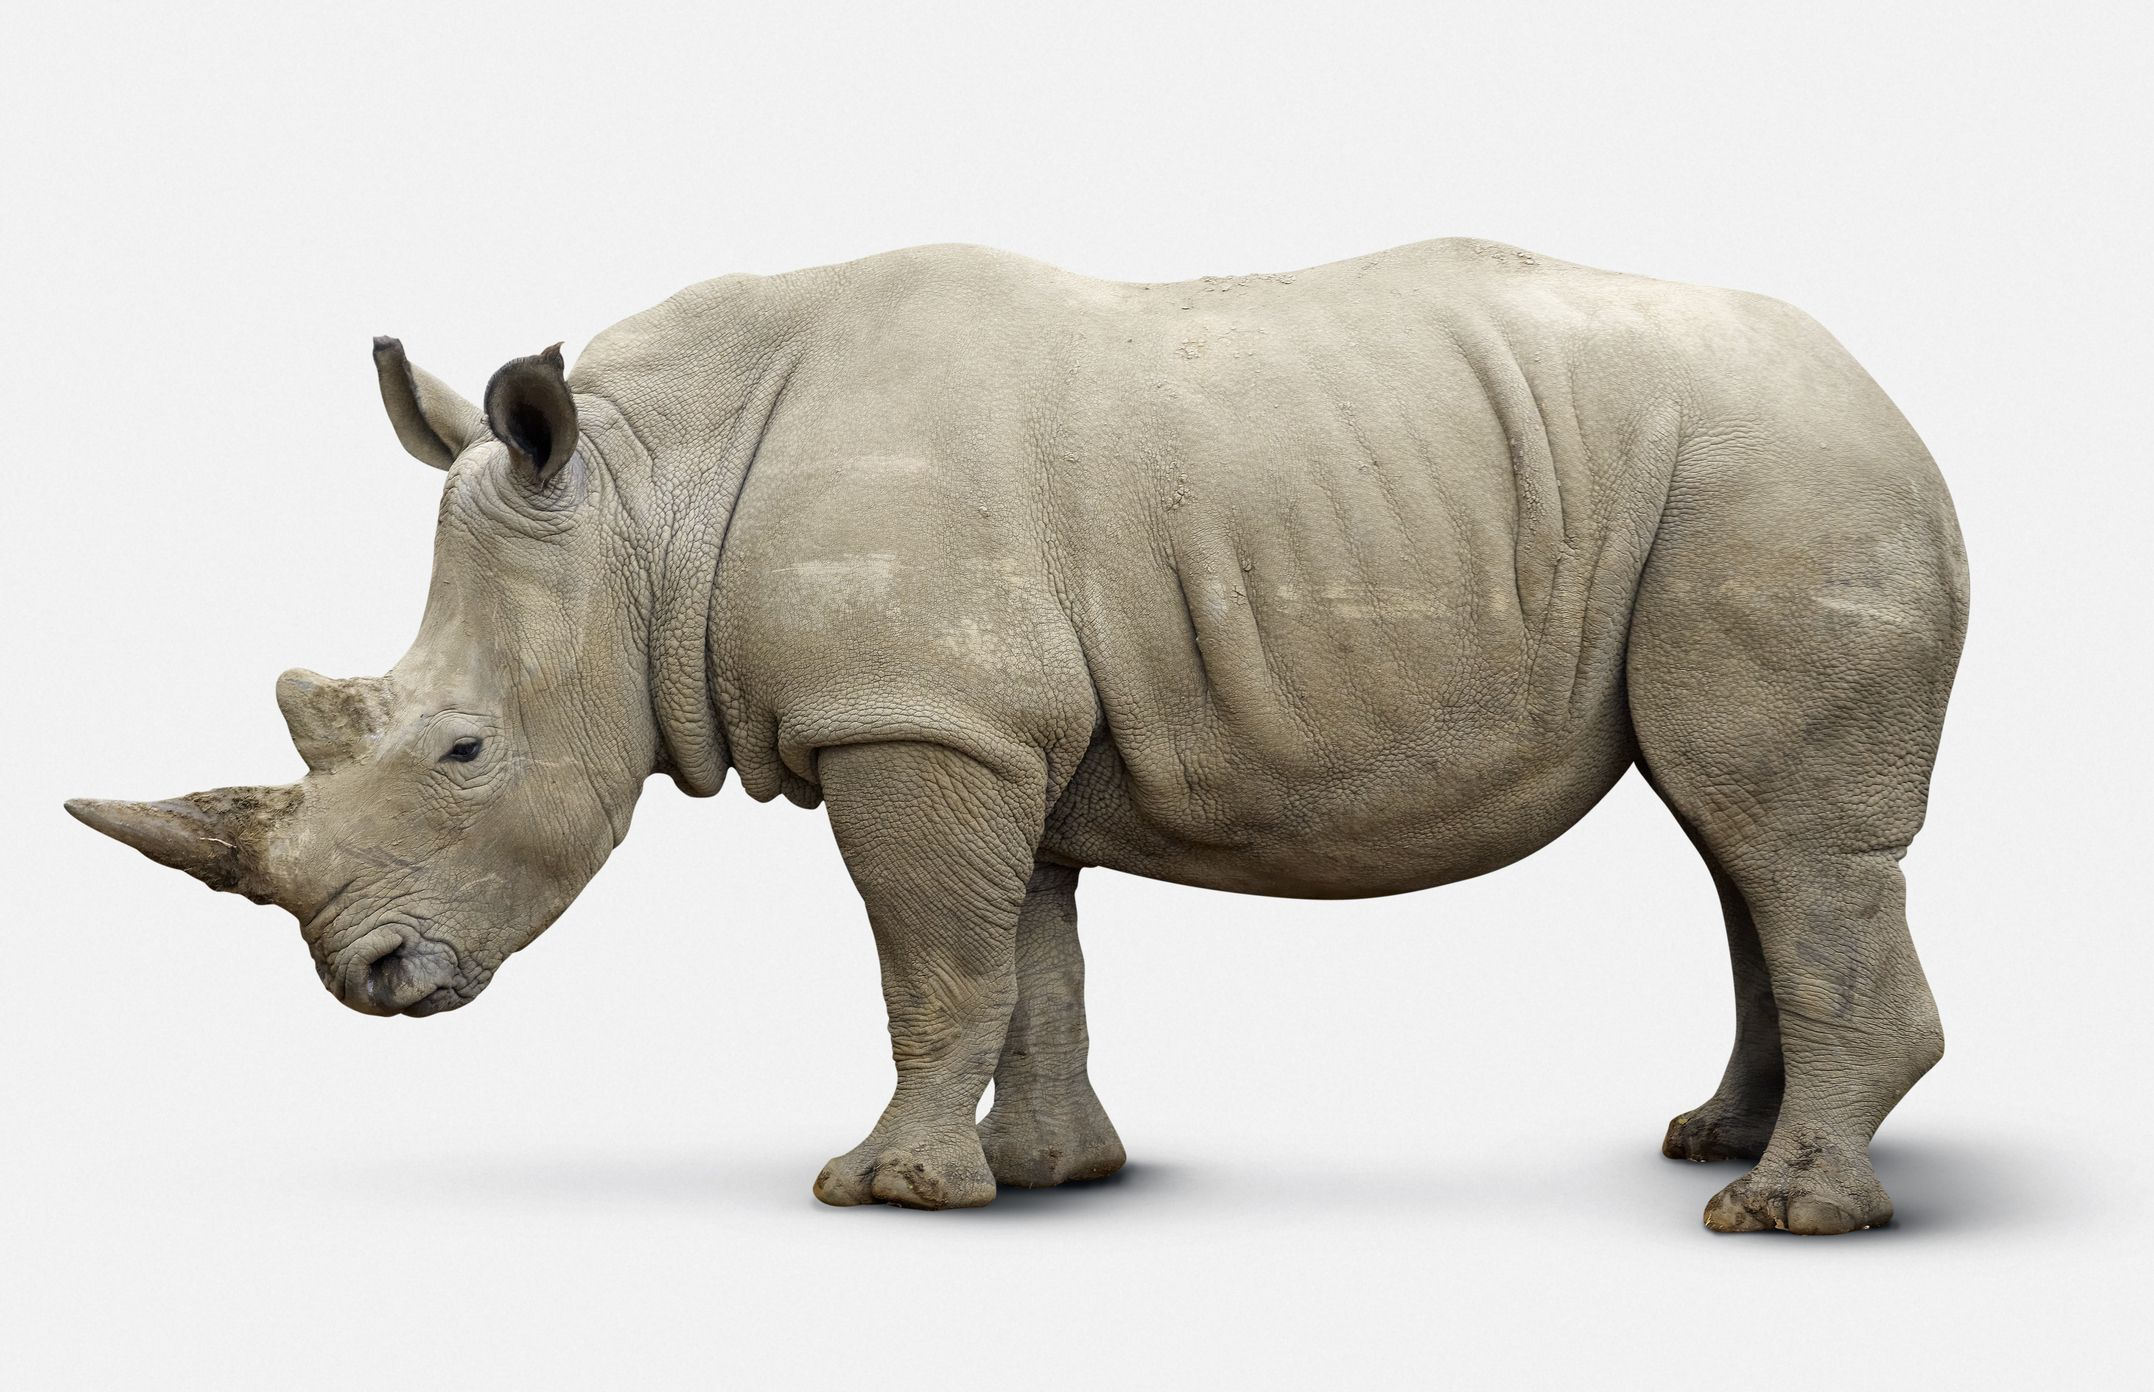 N White Rhino 10 Facts About ...